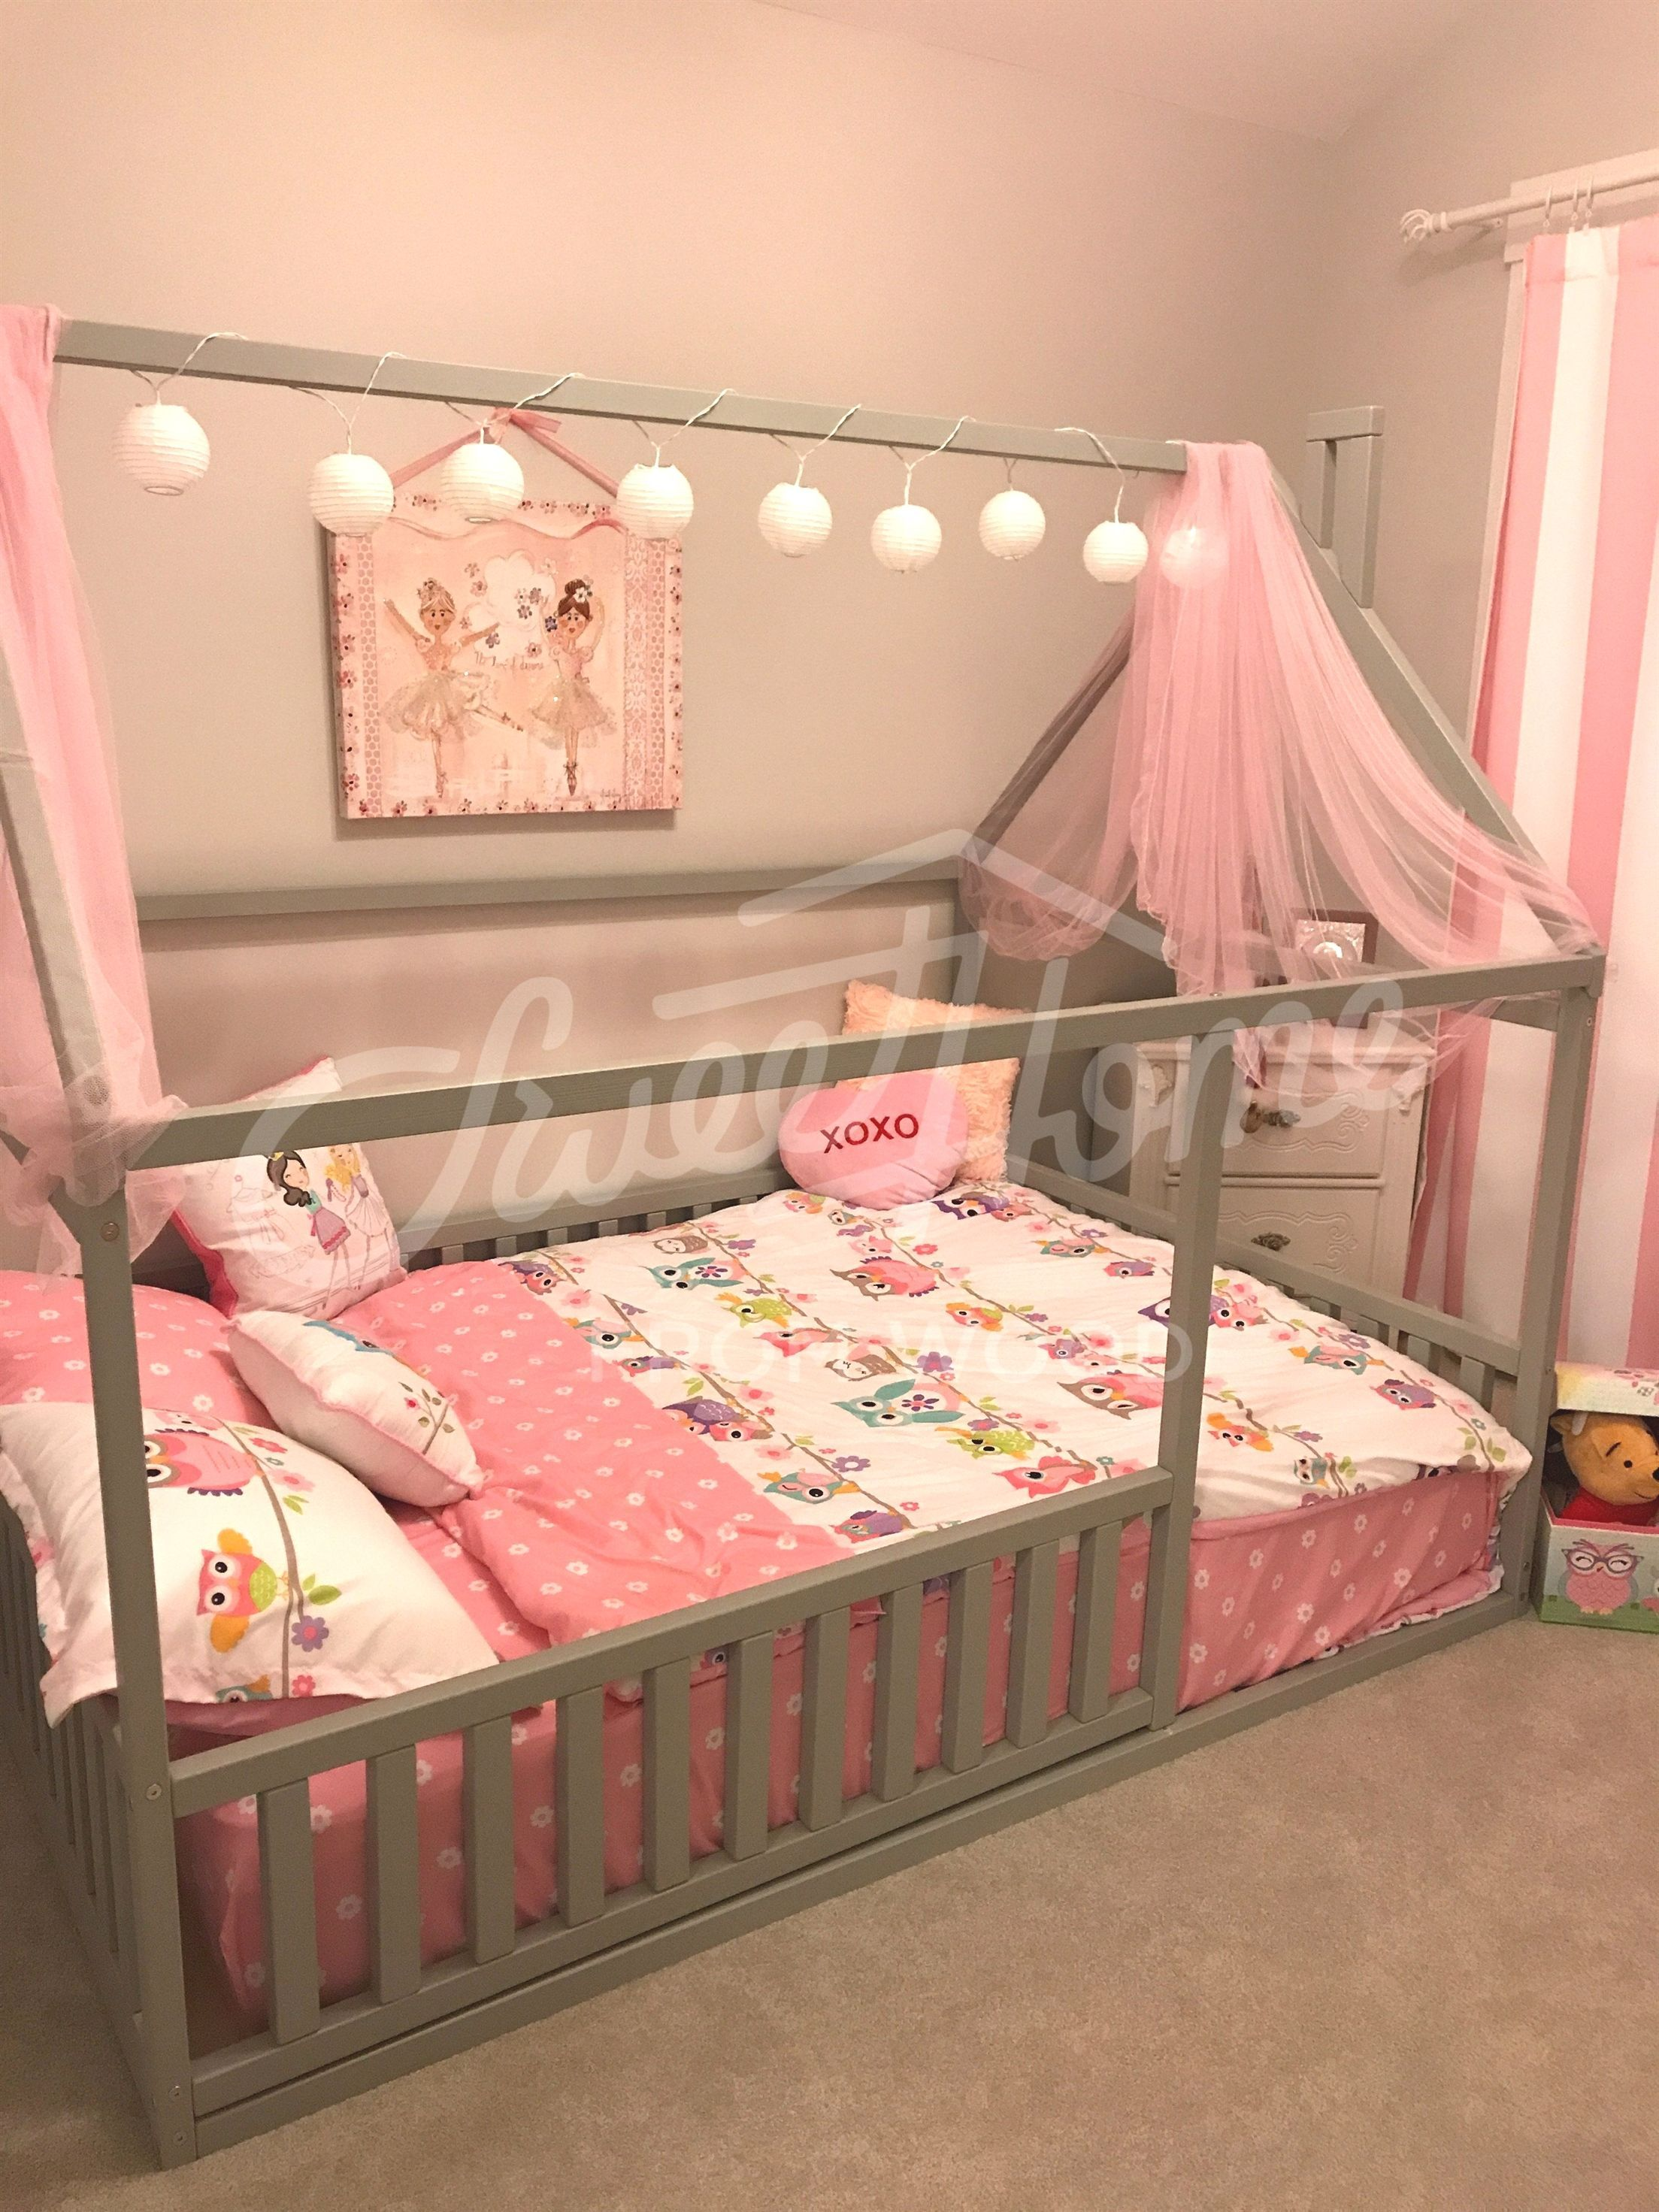 Grey Pink And White Girls Room Interior Ideas Little Princess Room Bed With Canopy Children Bed Toddl Little Girl Bedrooms Toddler Rooms White Girls Rooms